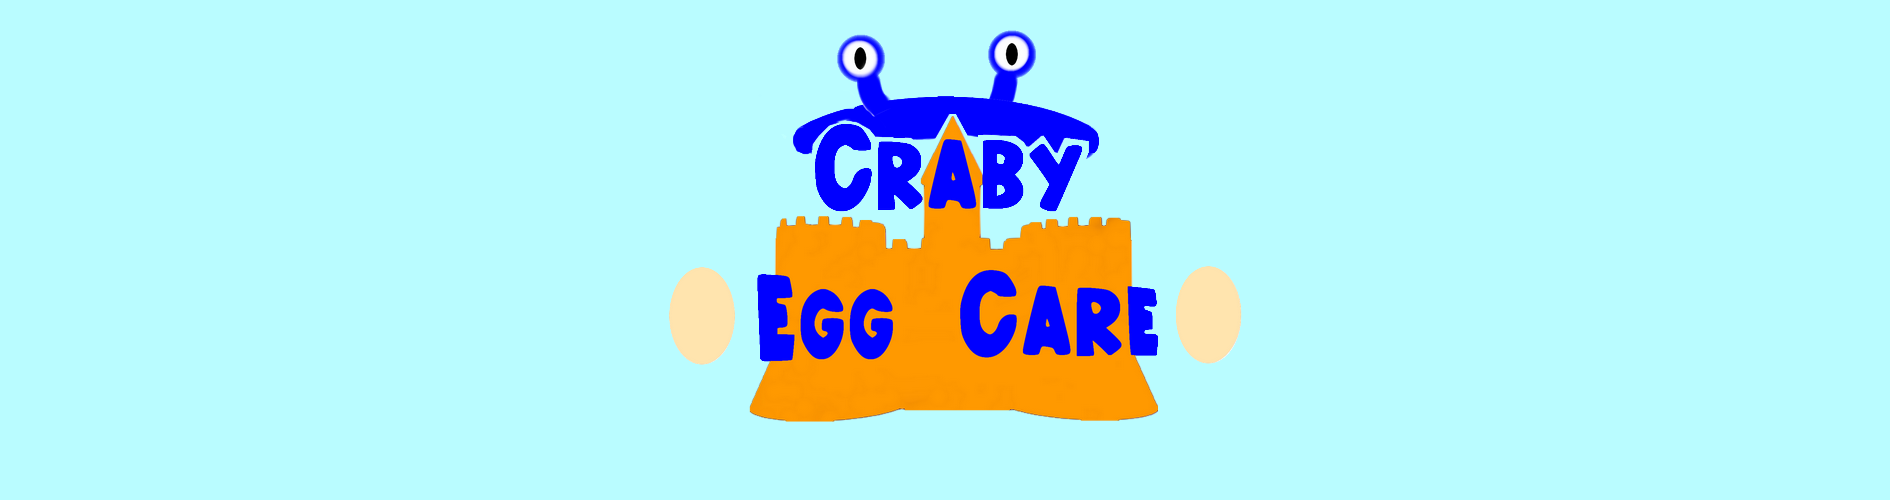 Craby Egg Care